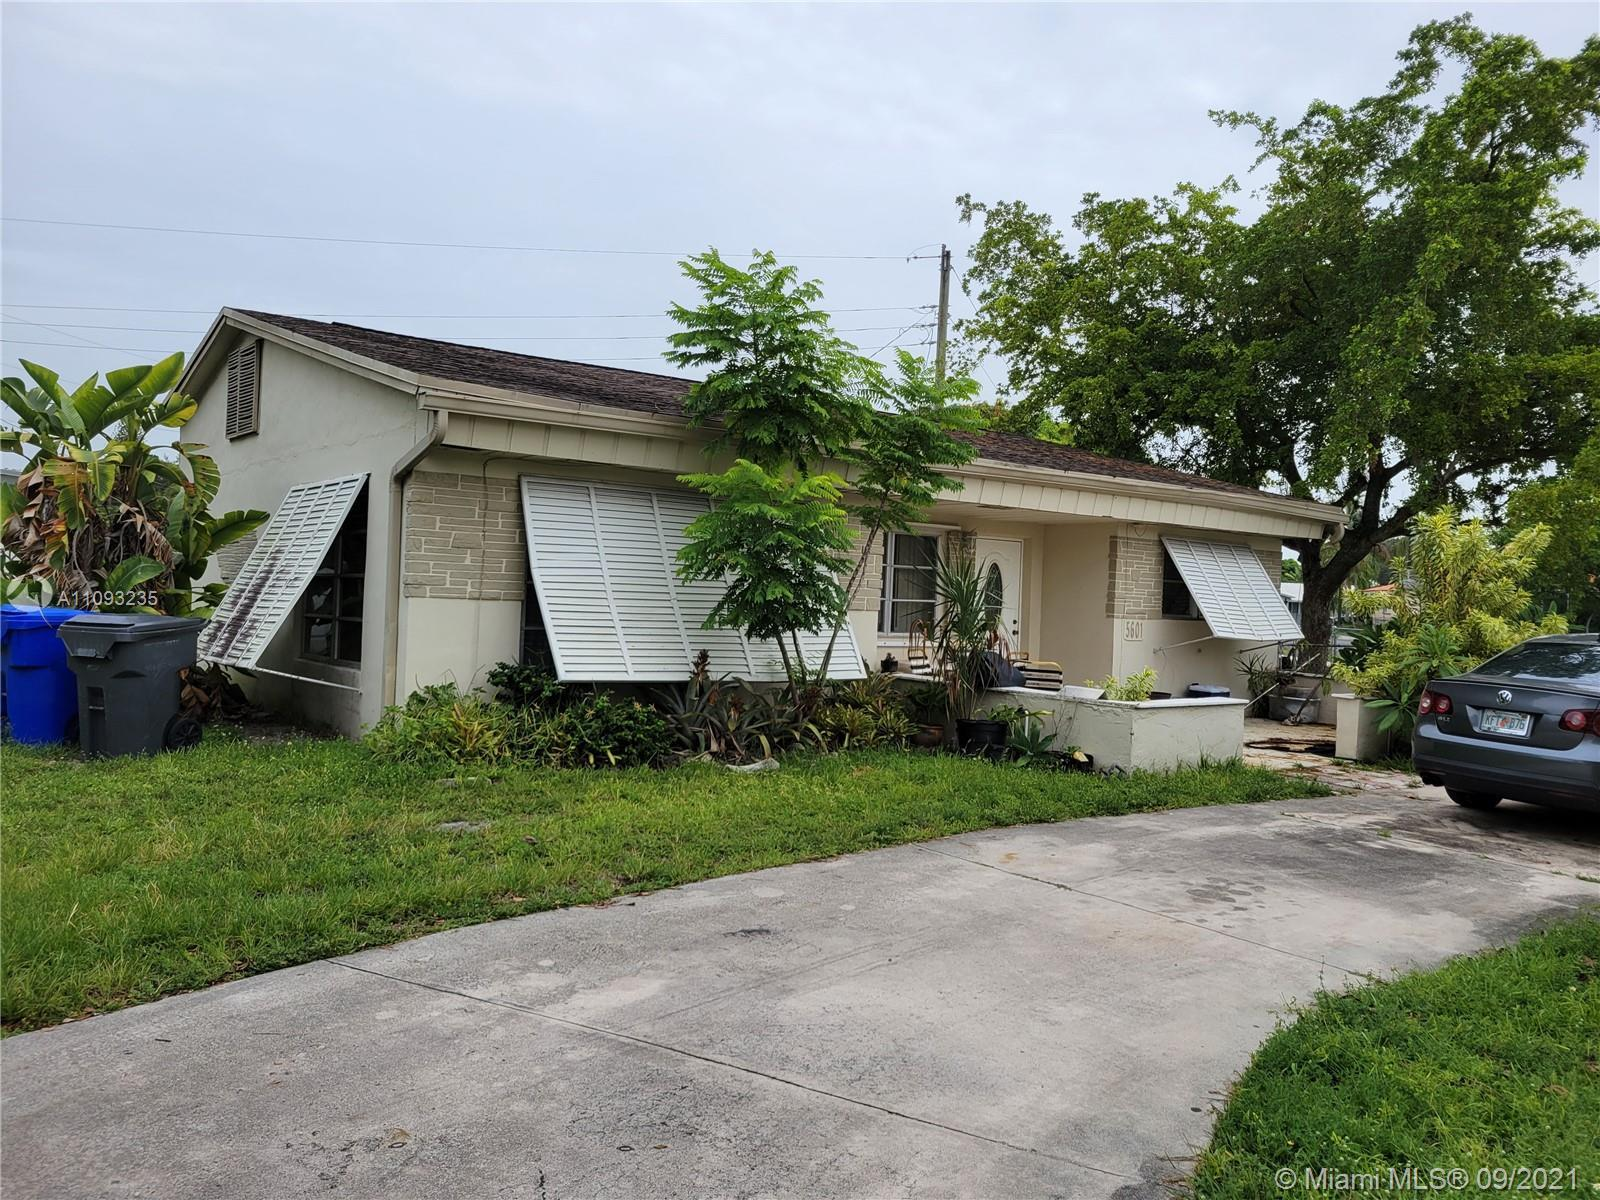 Great opportunity for an investor with great potential for this corner lot/property. Located in the